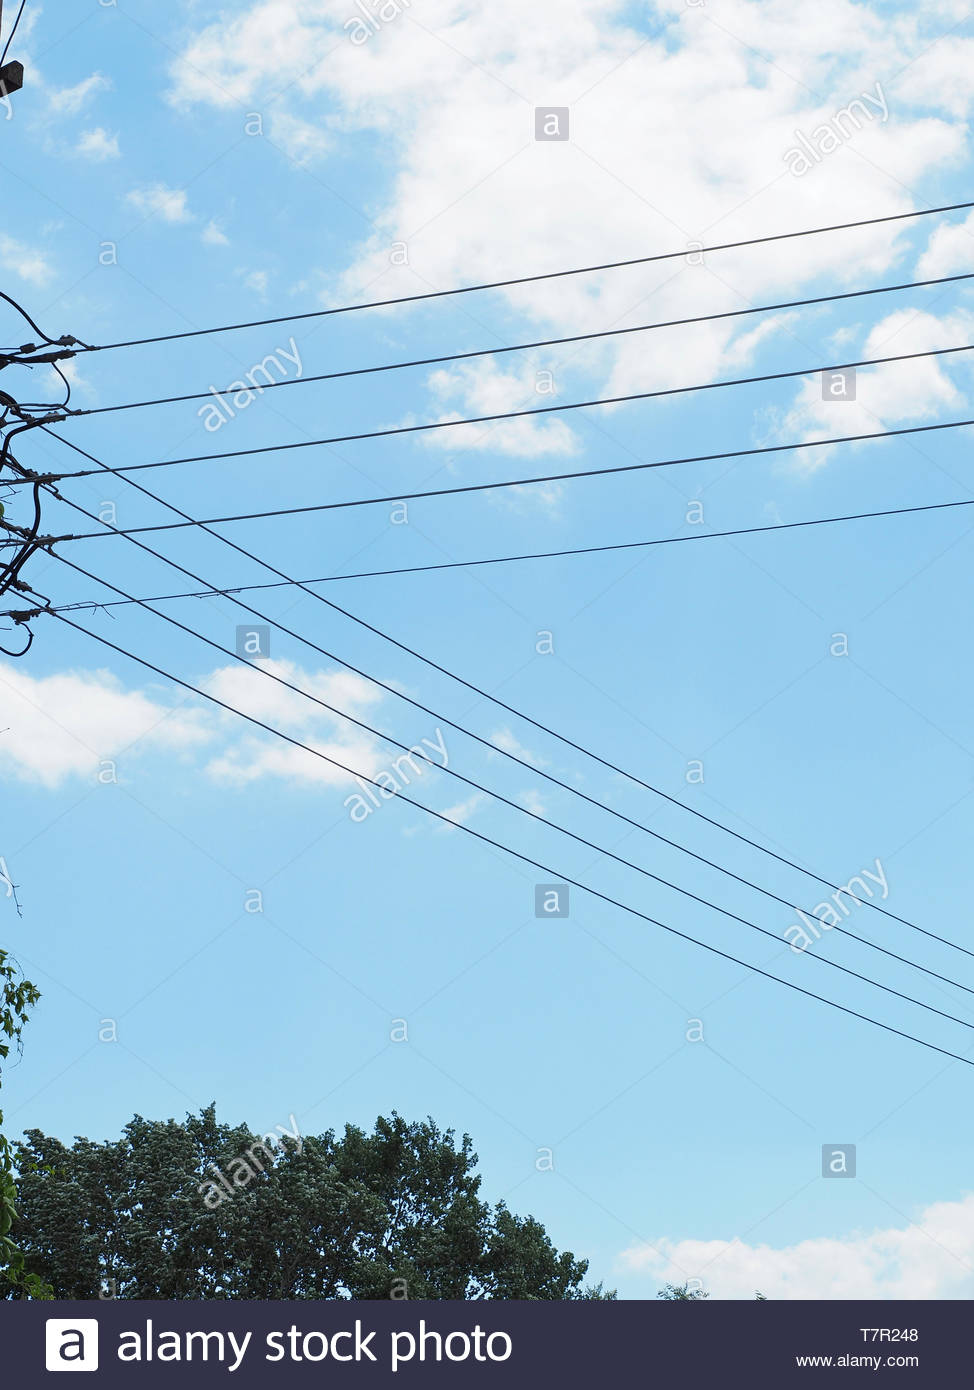 A grids view ,electric current cables - Stock Image